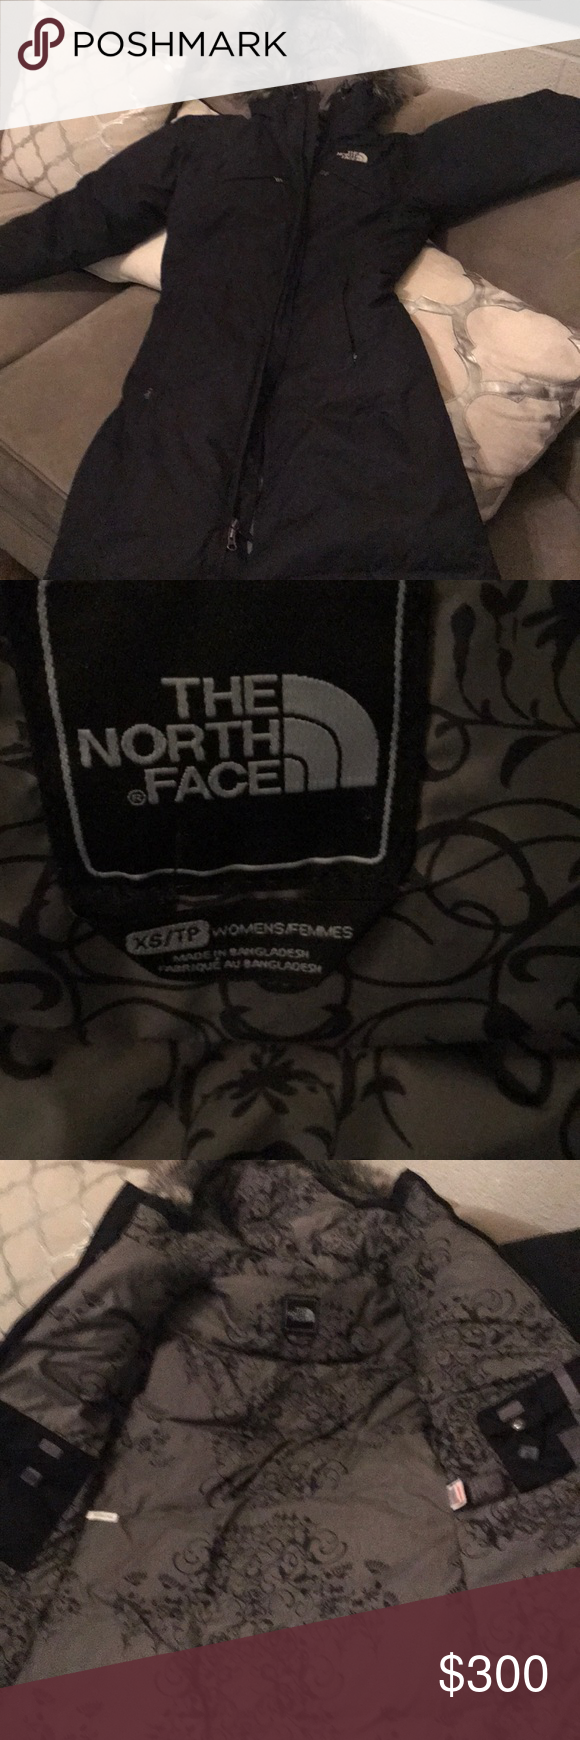 North face HyVent Down fill coat Just above the knee length super cute NWT XS The North Face Jackets & Coats Puffers